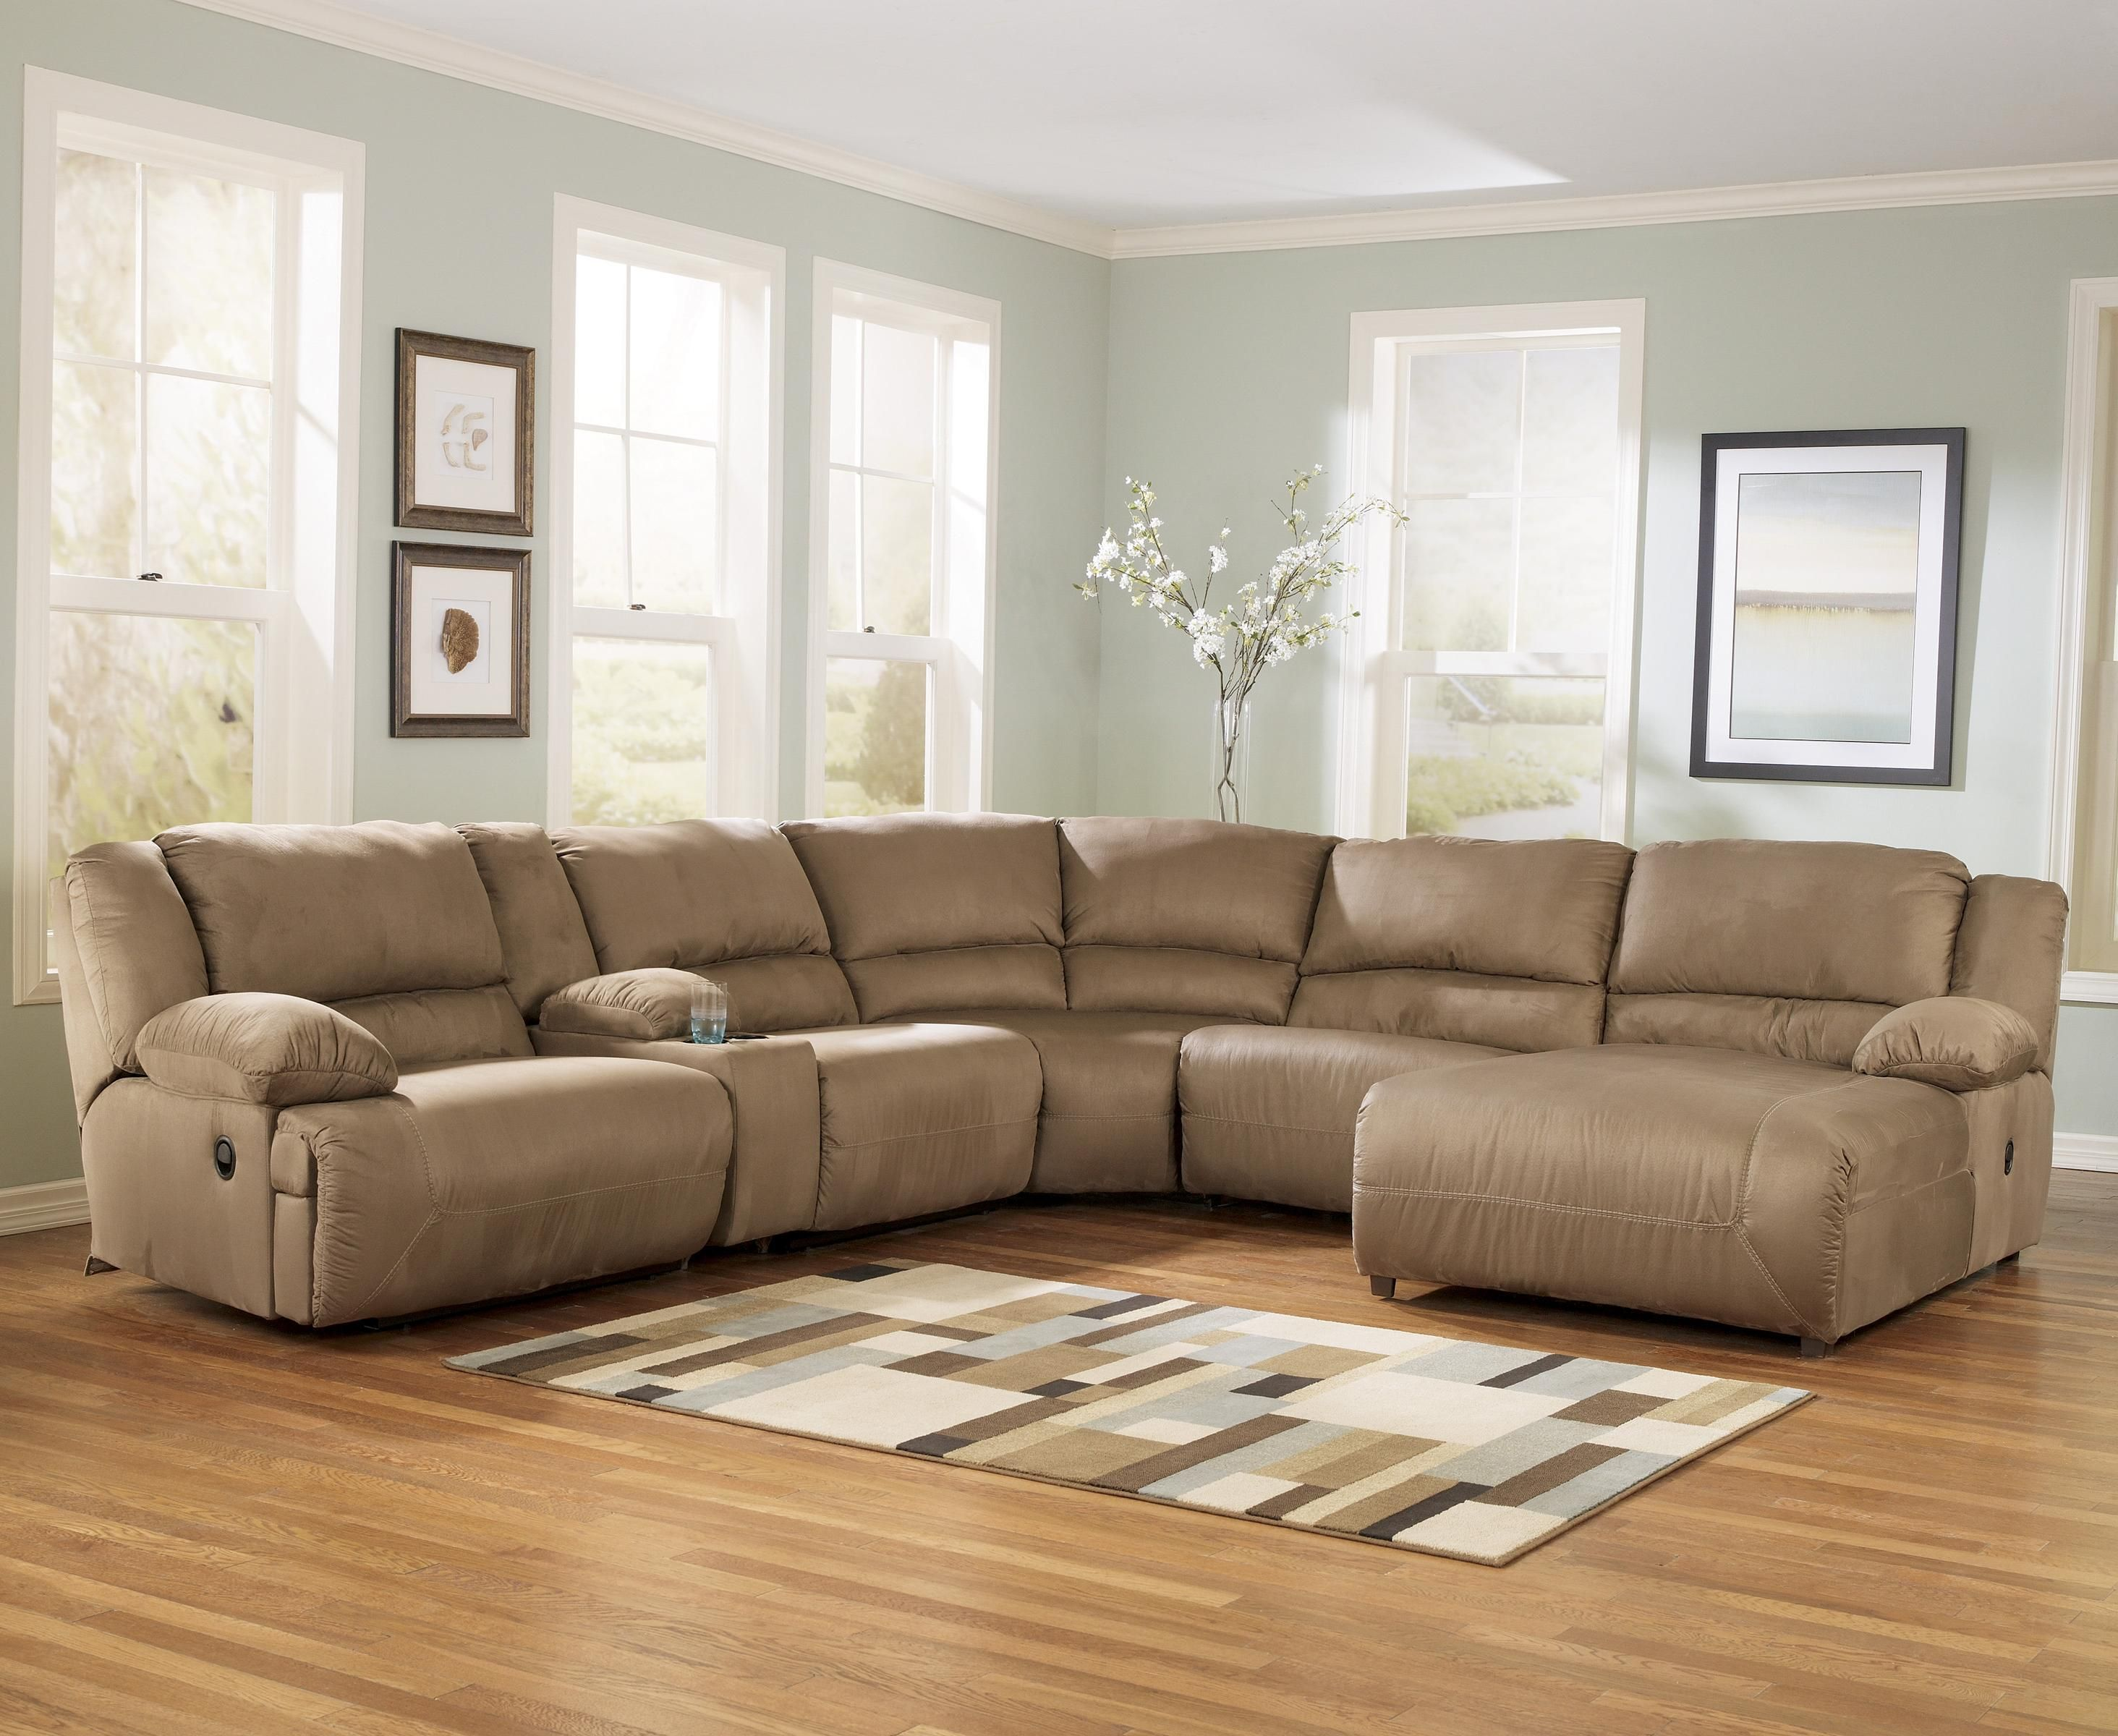 Hogan   Mocha 6 Piece Motion Sectional With Right Chaise And Console By  Signature Design By Ashley